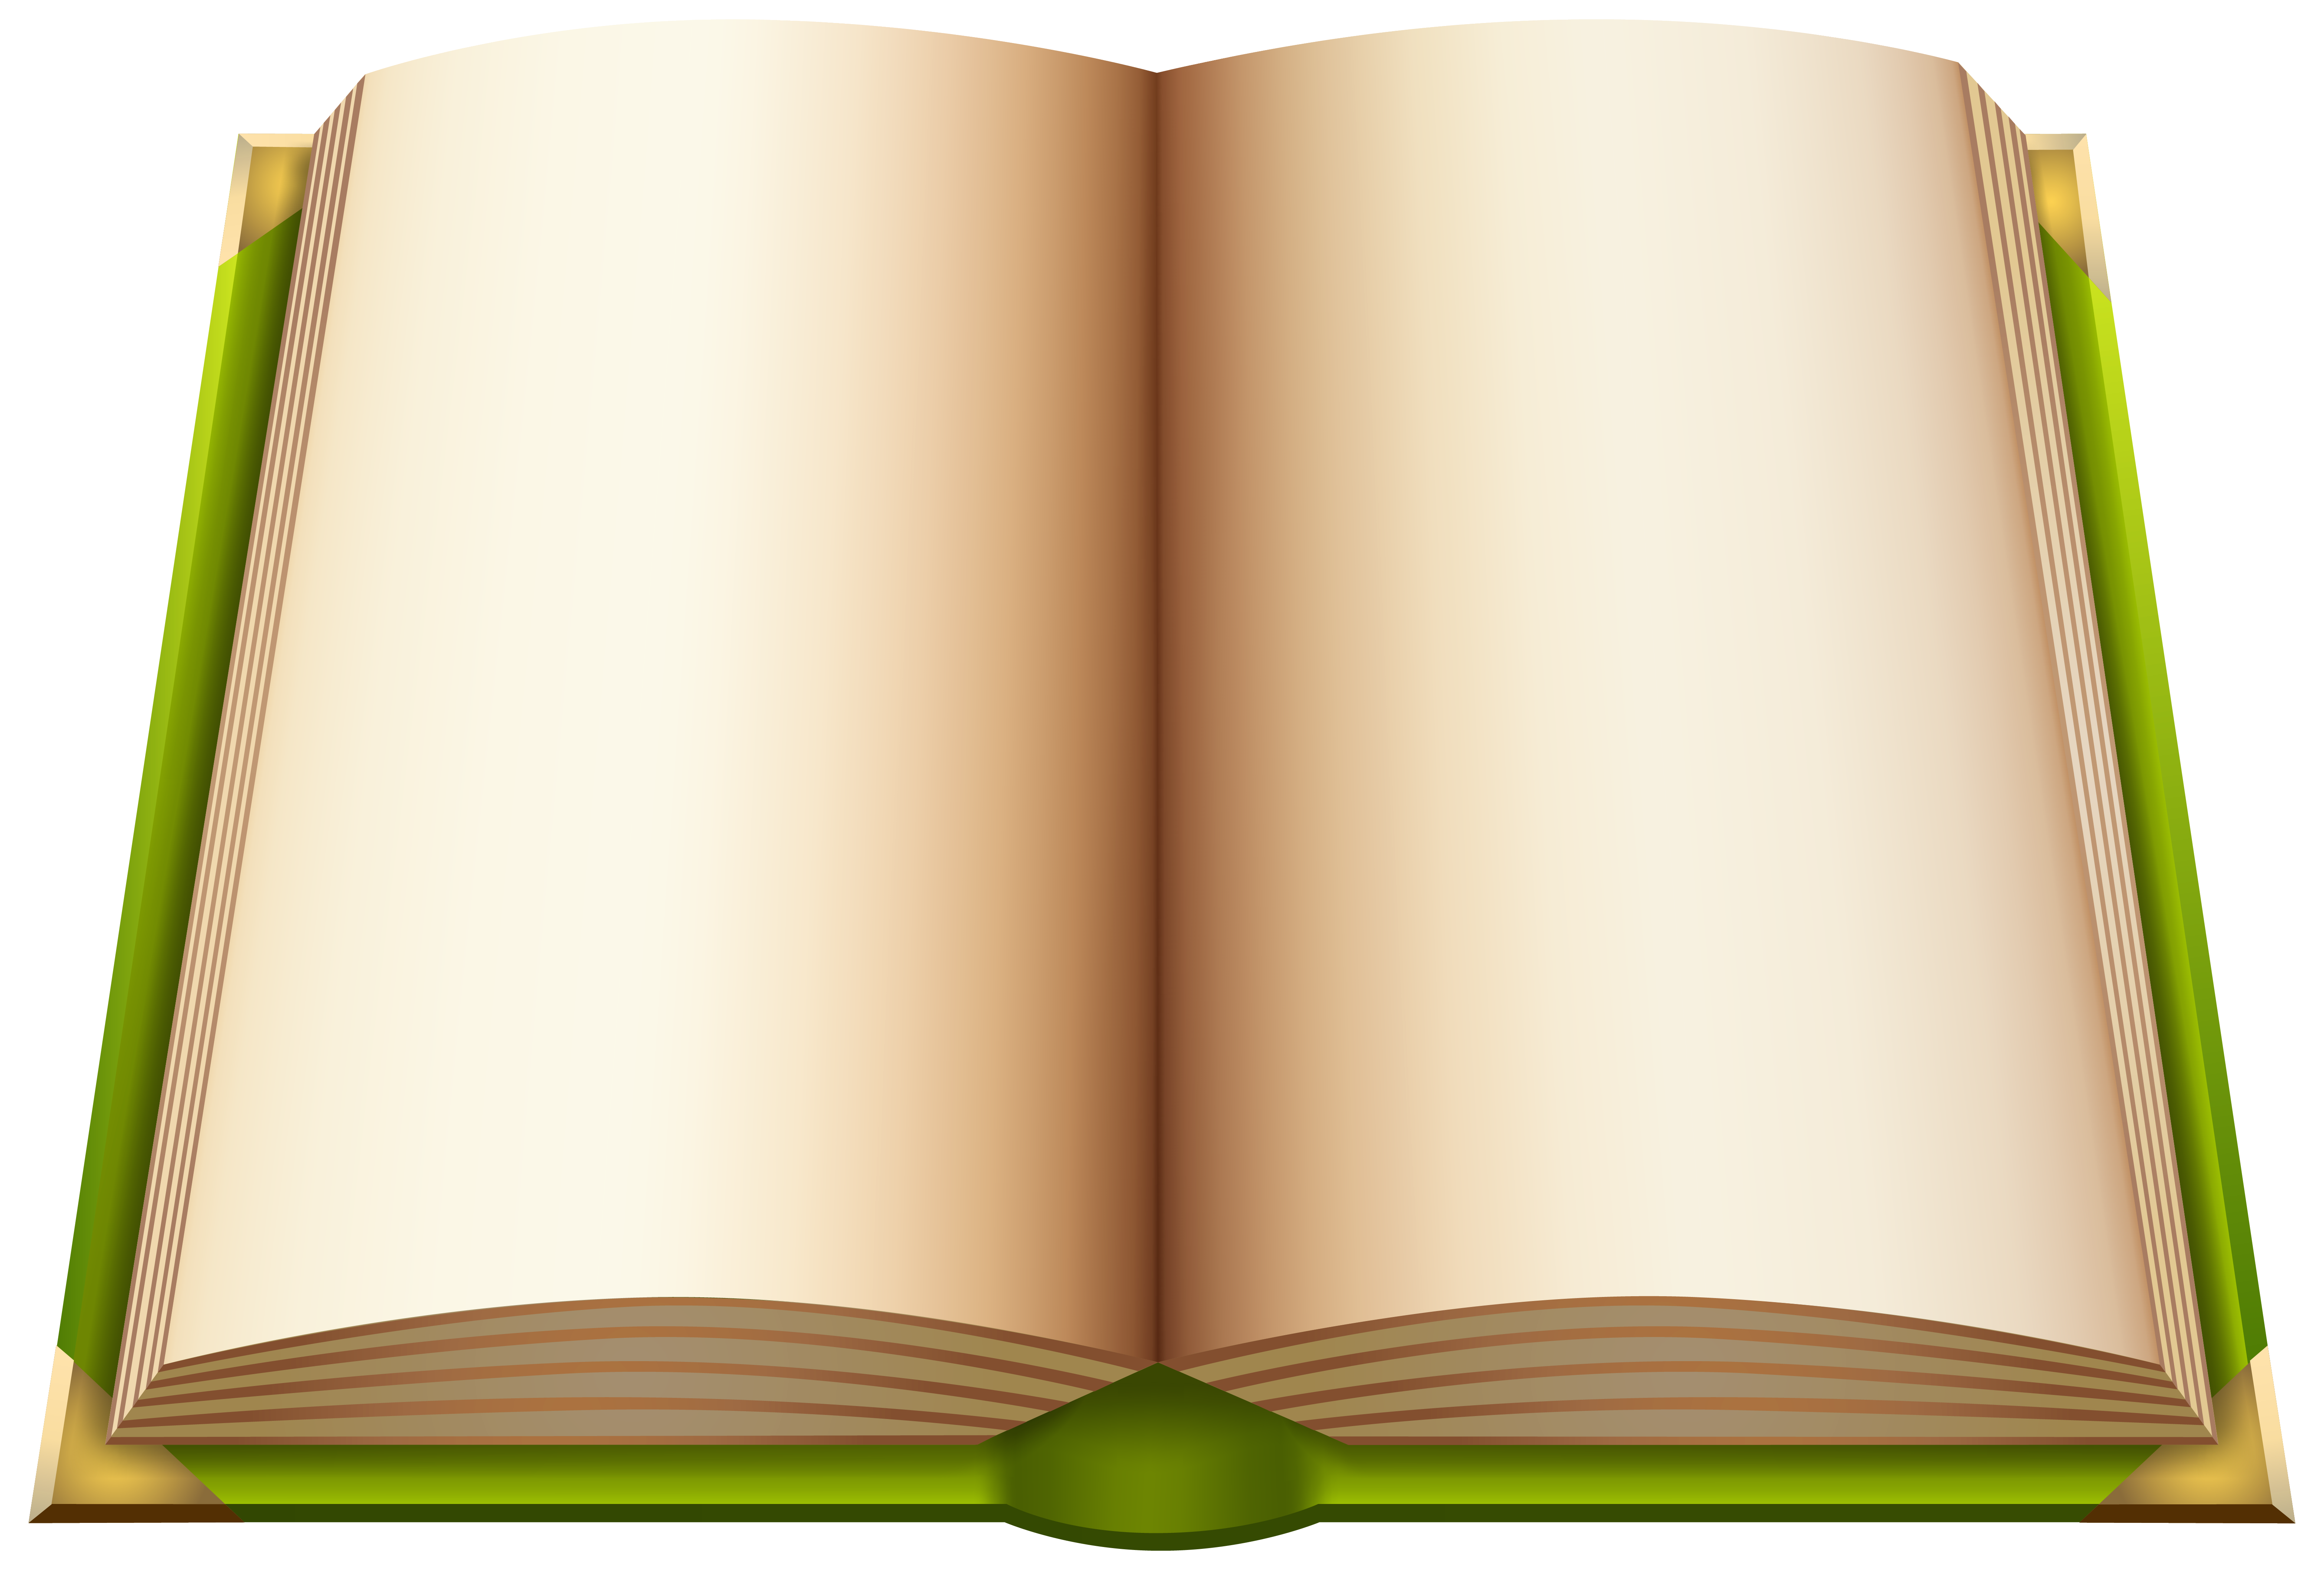 Open your book clipart graphic royalty free download Green Open Book PNG Clipart - Best WEB Clipart graphic royalty free download